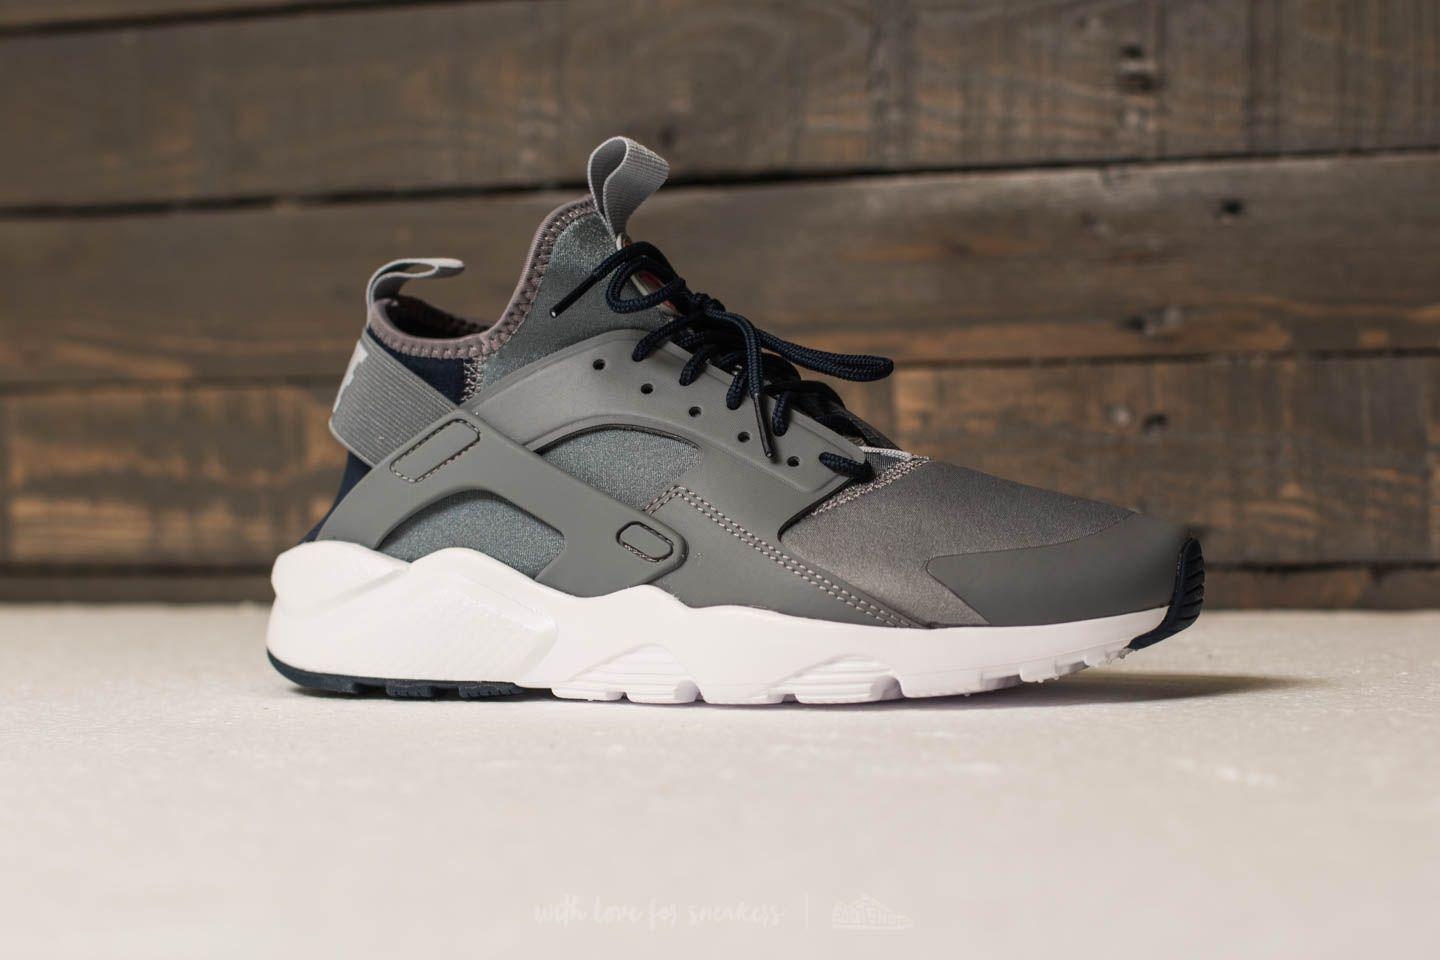 Lyst - Nike Air Huarache Run Ultra Cool Grey  Wolf Grey-obsidian in ... 2b01c21c8d